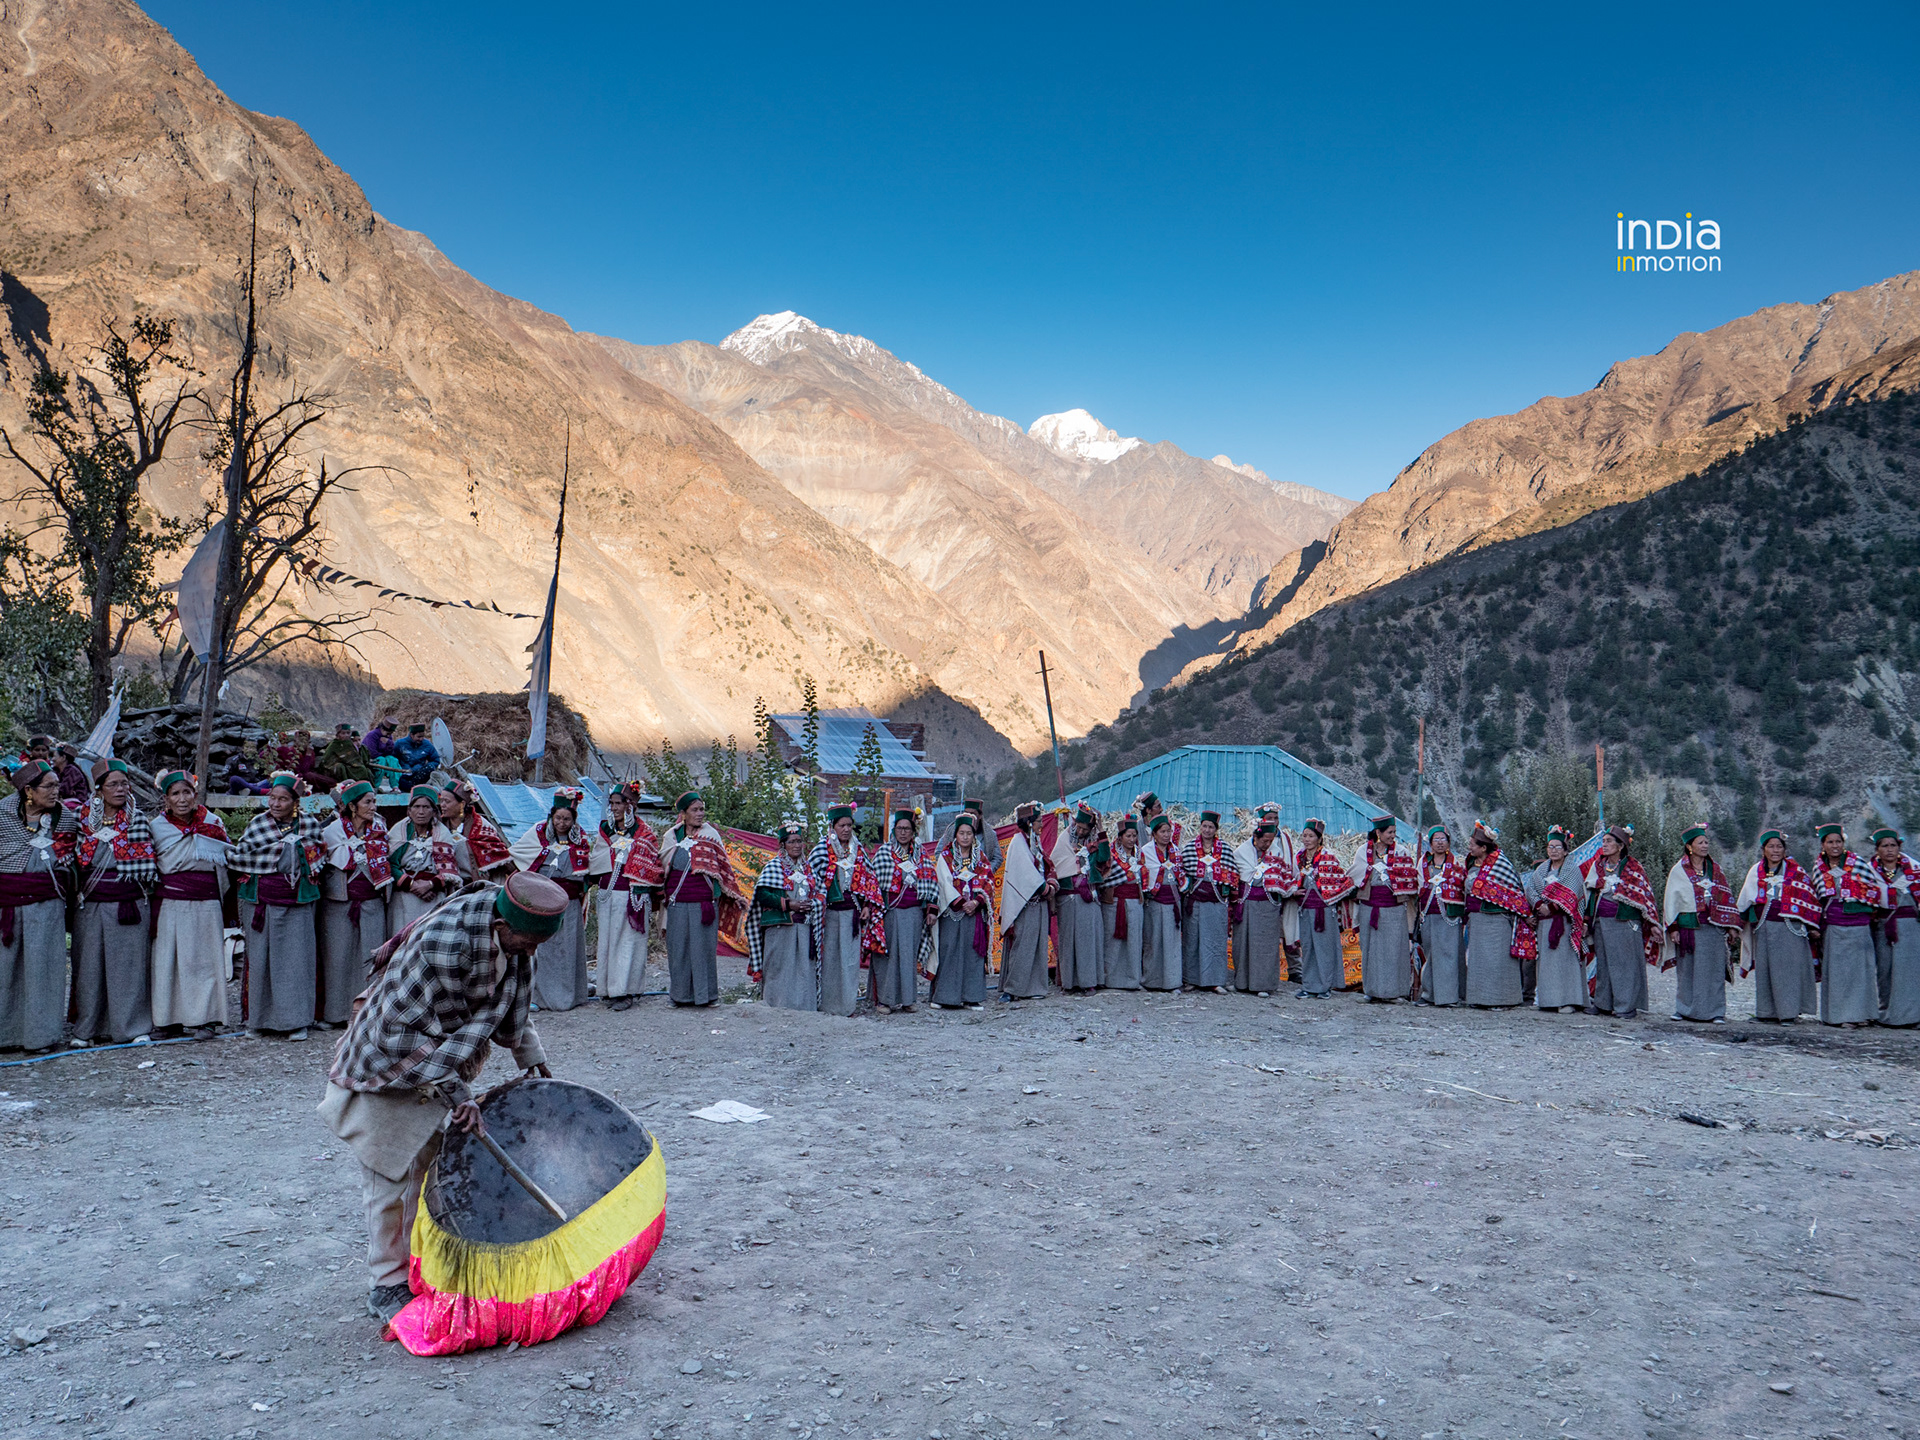 India in Motion - Festivals of Kinnaur